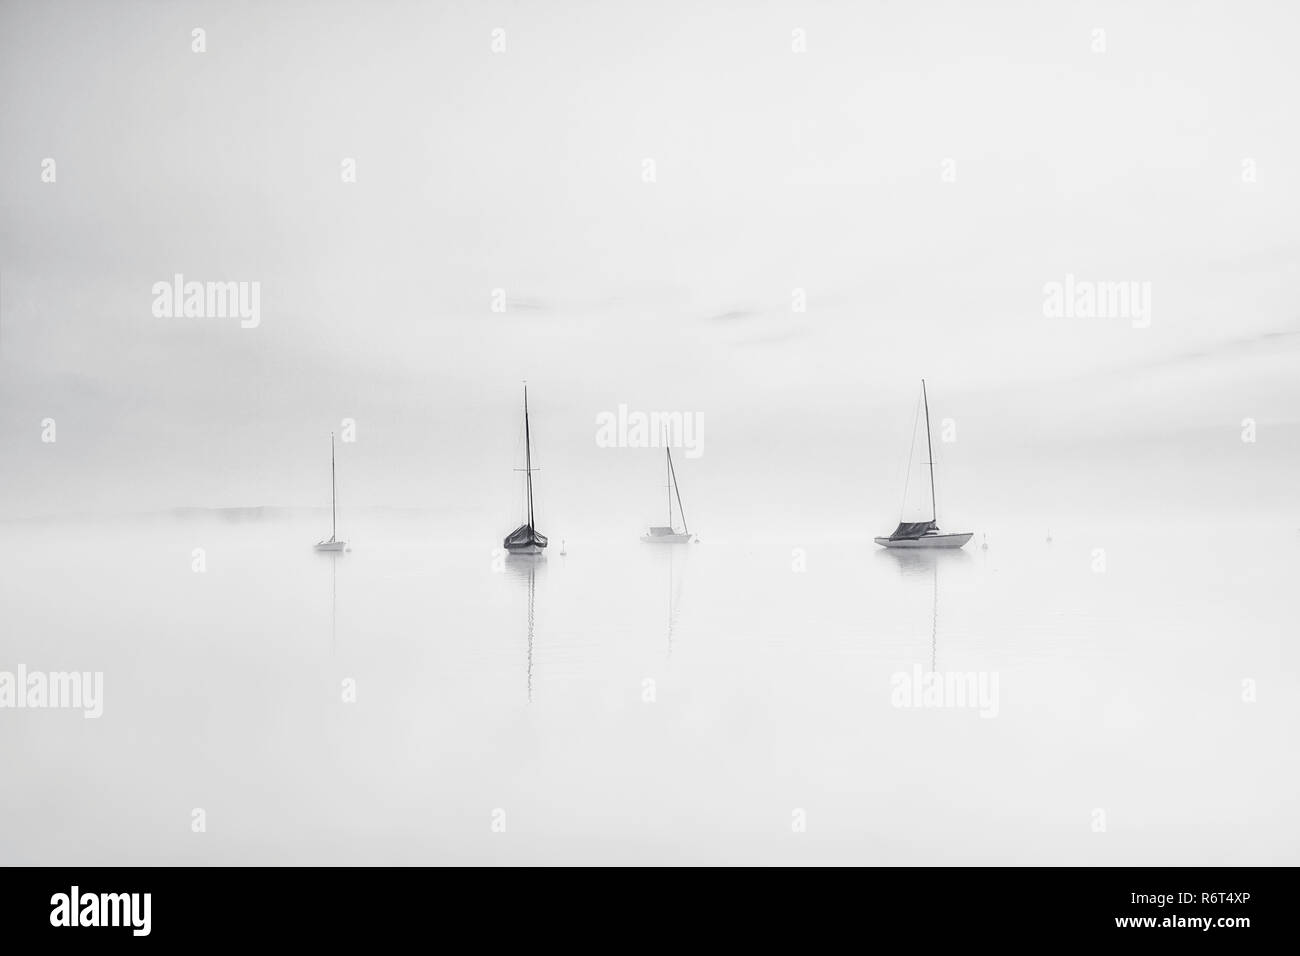 Ammersee Bavaria Sailboats in the morning at sunrise with fog - Stock Image